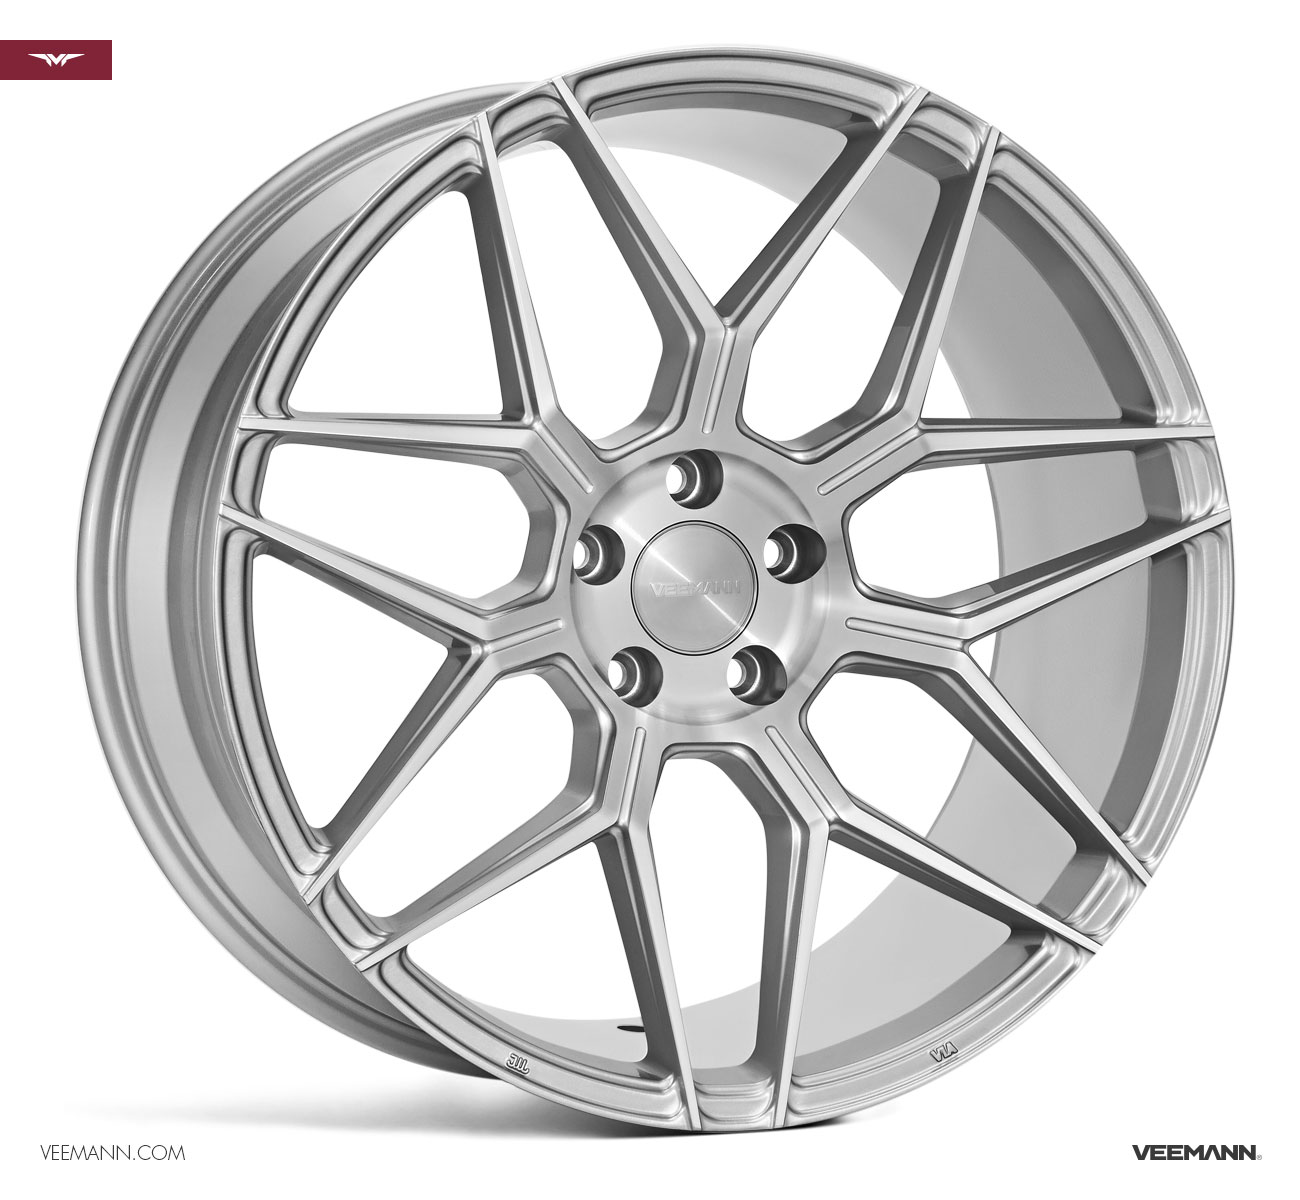 "NEW 19"" VEEMANN V-FS38 ALLOY WHEELS IN SILVER POL WITH WIDER 9.5"" REAR"